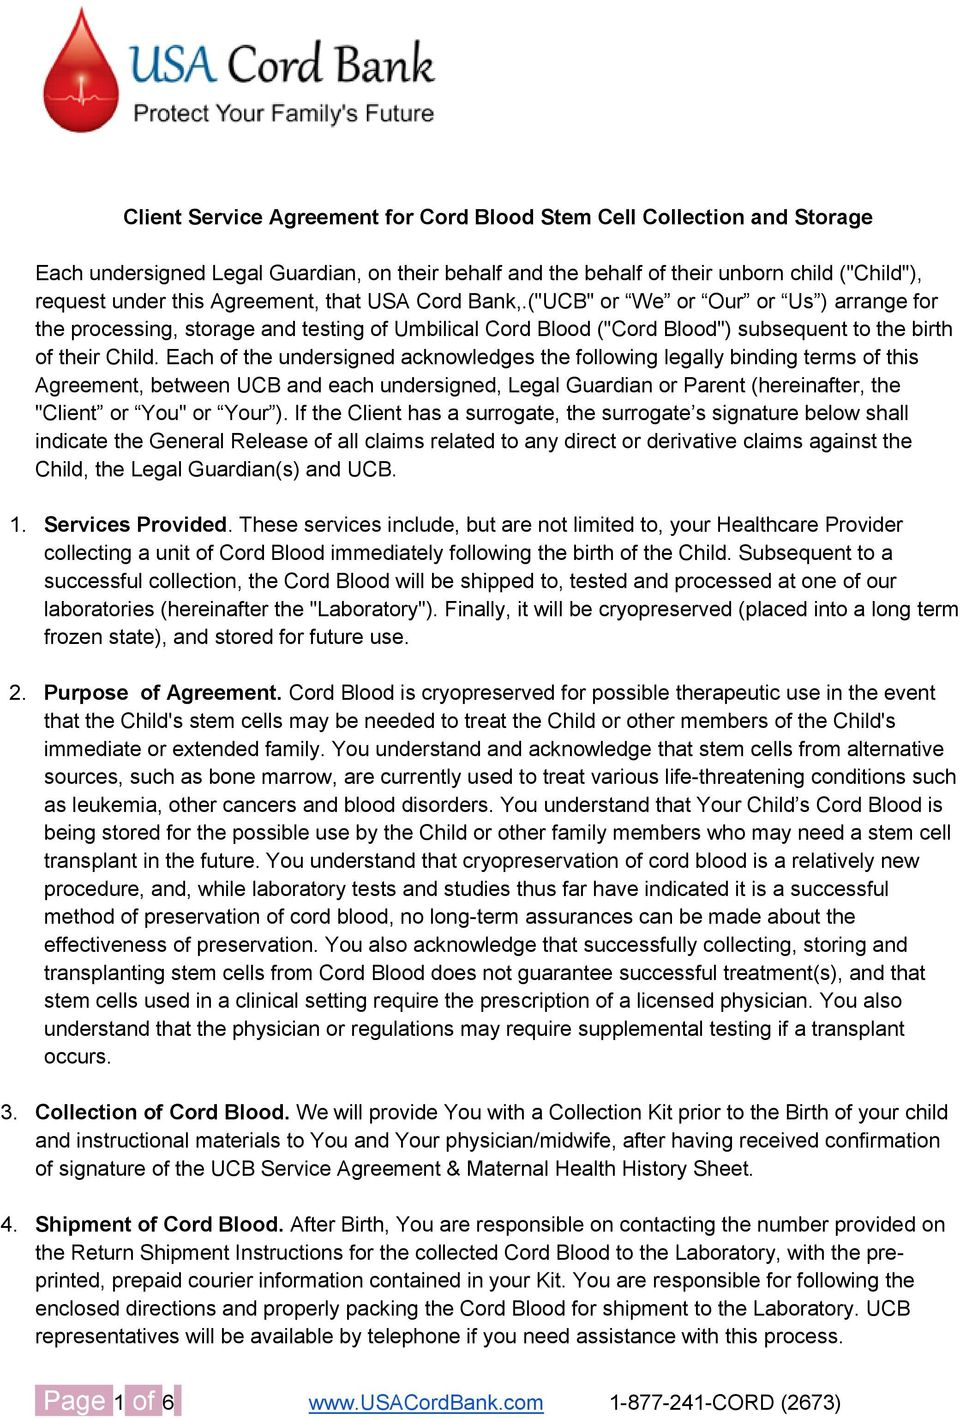 "Each of the undersigned acknowledges the following legally binding terms of this Agreement, between UCB and each undersigned, Legal Guardian or Parent (hereinafter, the ""Client or You"" or Your )."